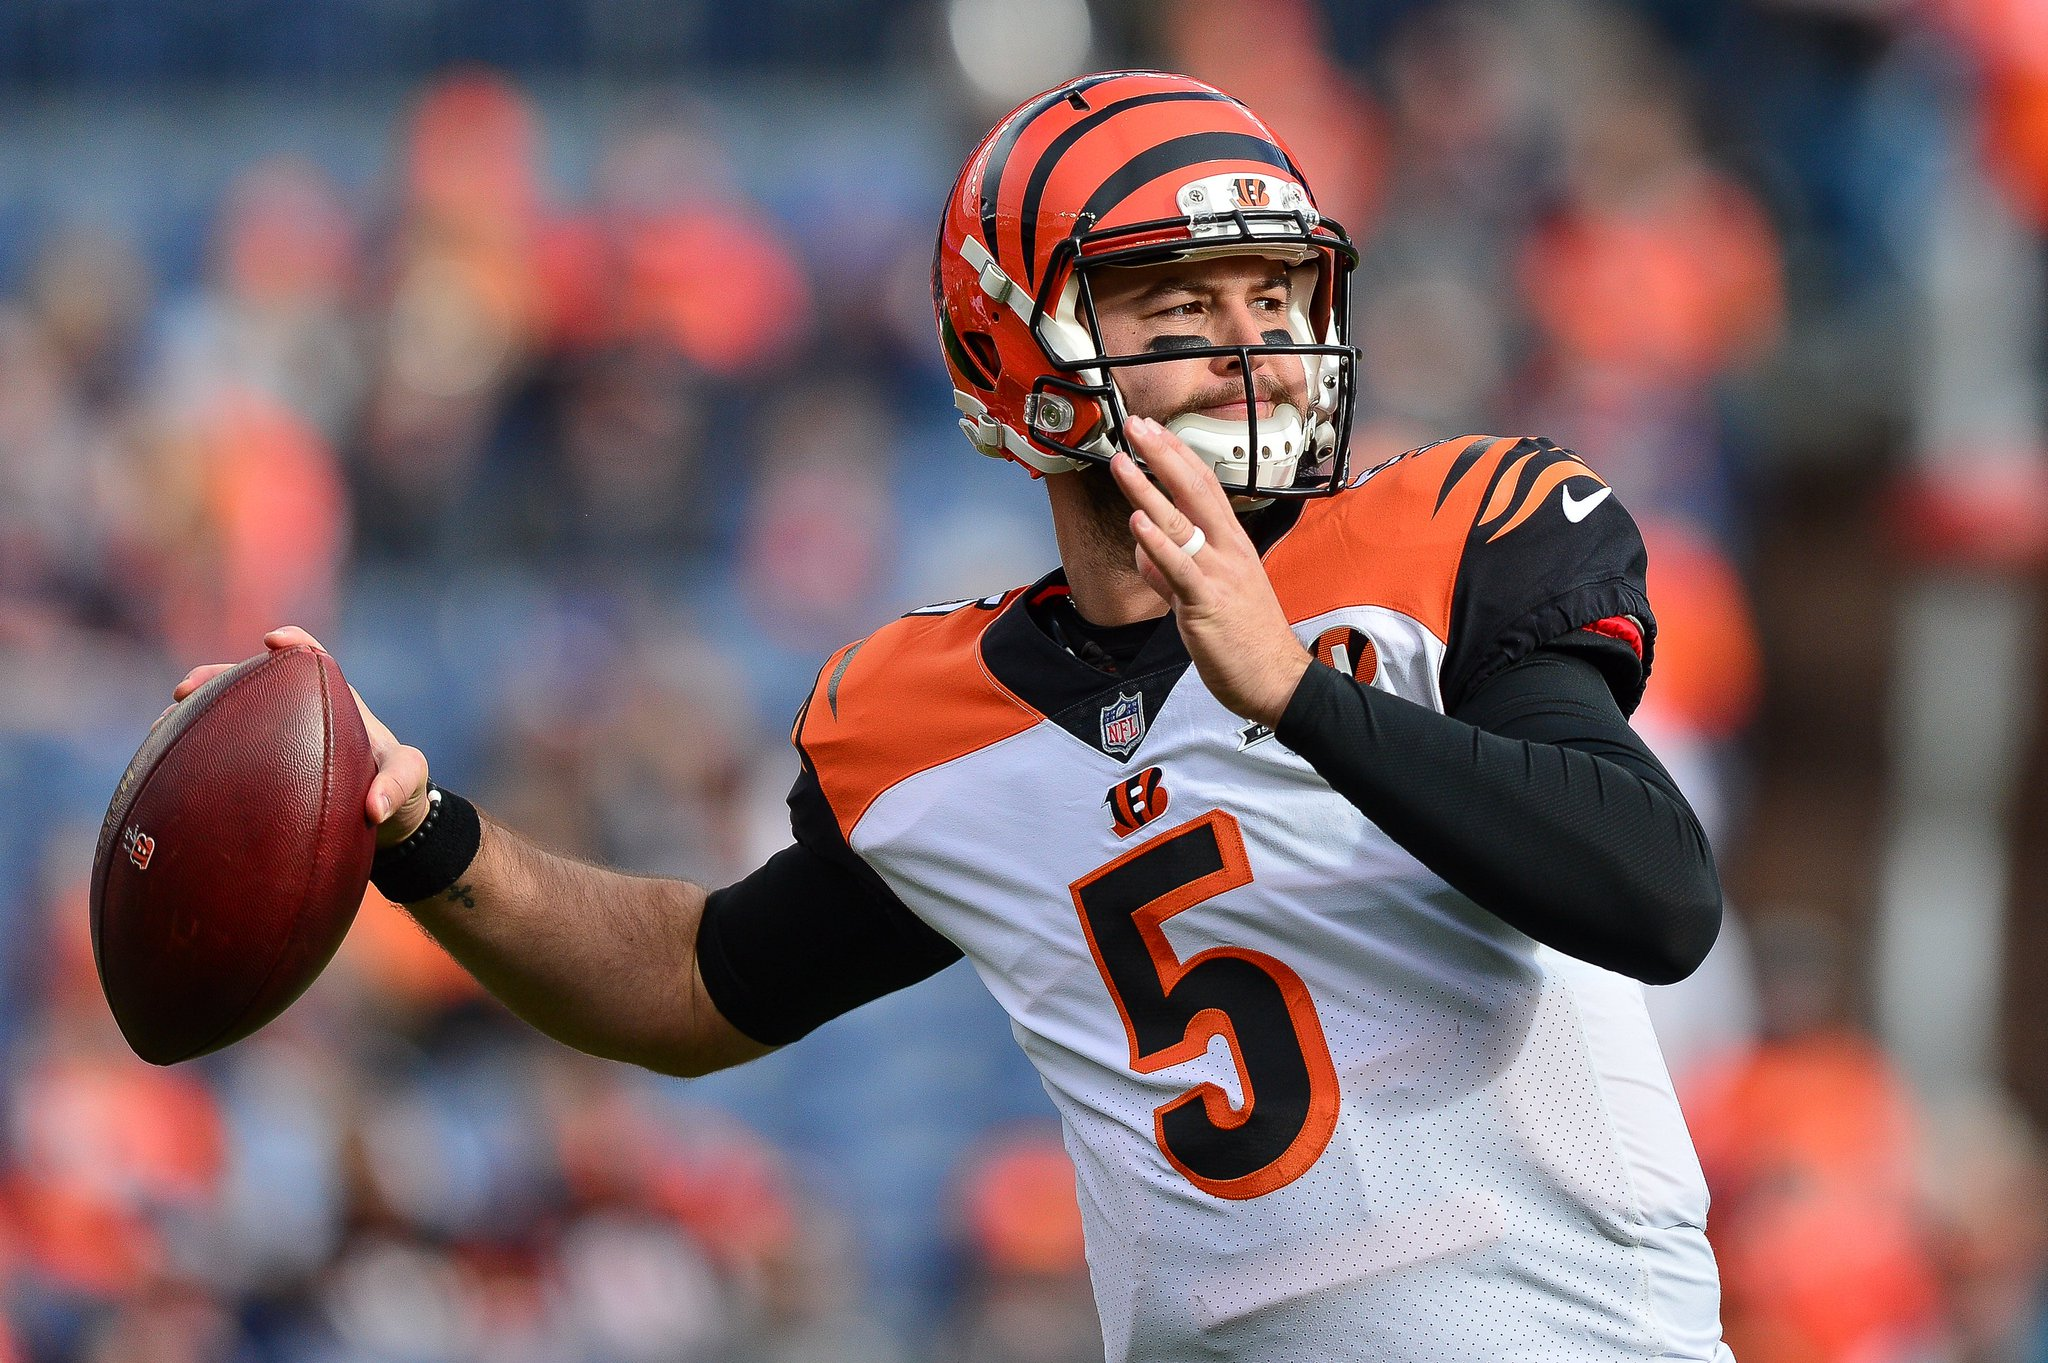 AJ McCarron wins grievance against Bengals and will be free agent, per @RapSheet https://t.co/e1NjUEY1PA https://t.co/5BVjwzpdN6